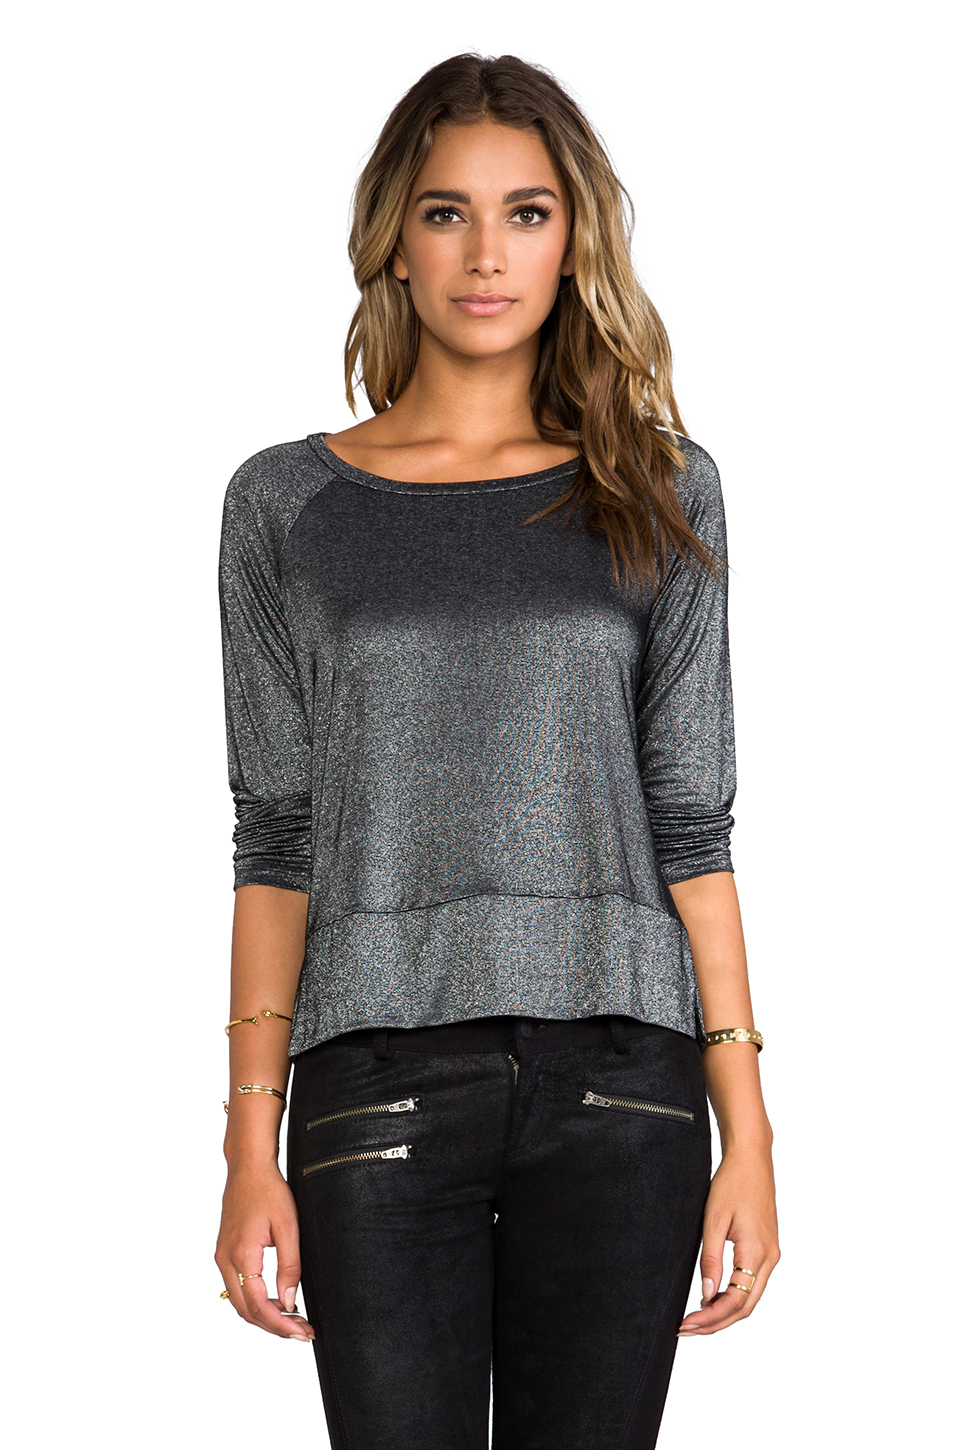 Splendid Drapey Lux Tee in Black/Silver